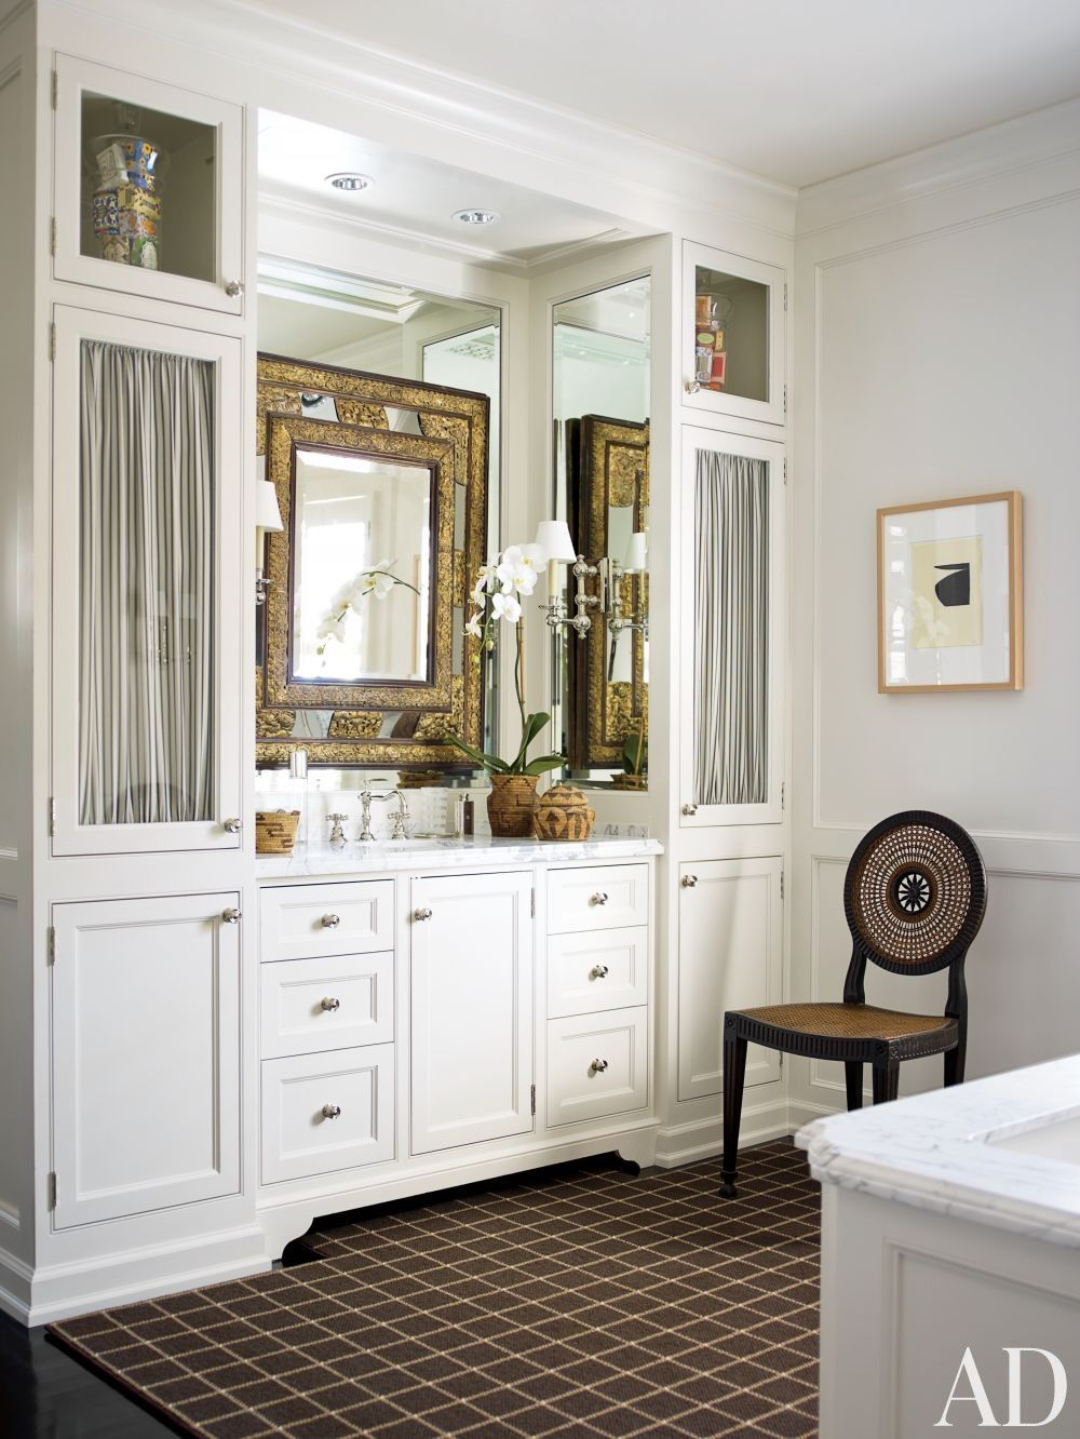 Top 20 Interior Designers/Architects from Houston, TX interior design Interior Designers/Architects from Houston, a look at Bathroom Designs – Top 20 Top 20 Interior DesignersArchitects from Houston TX J Randall MV